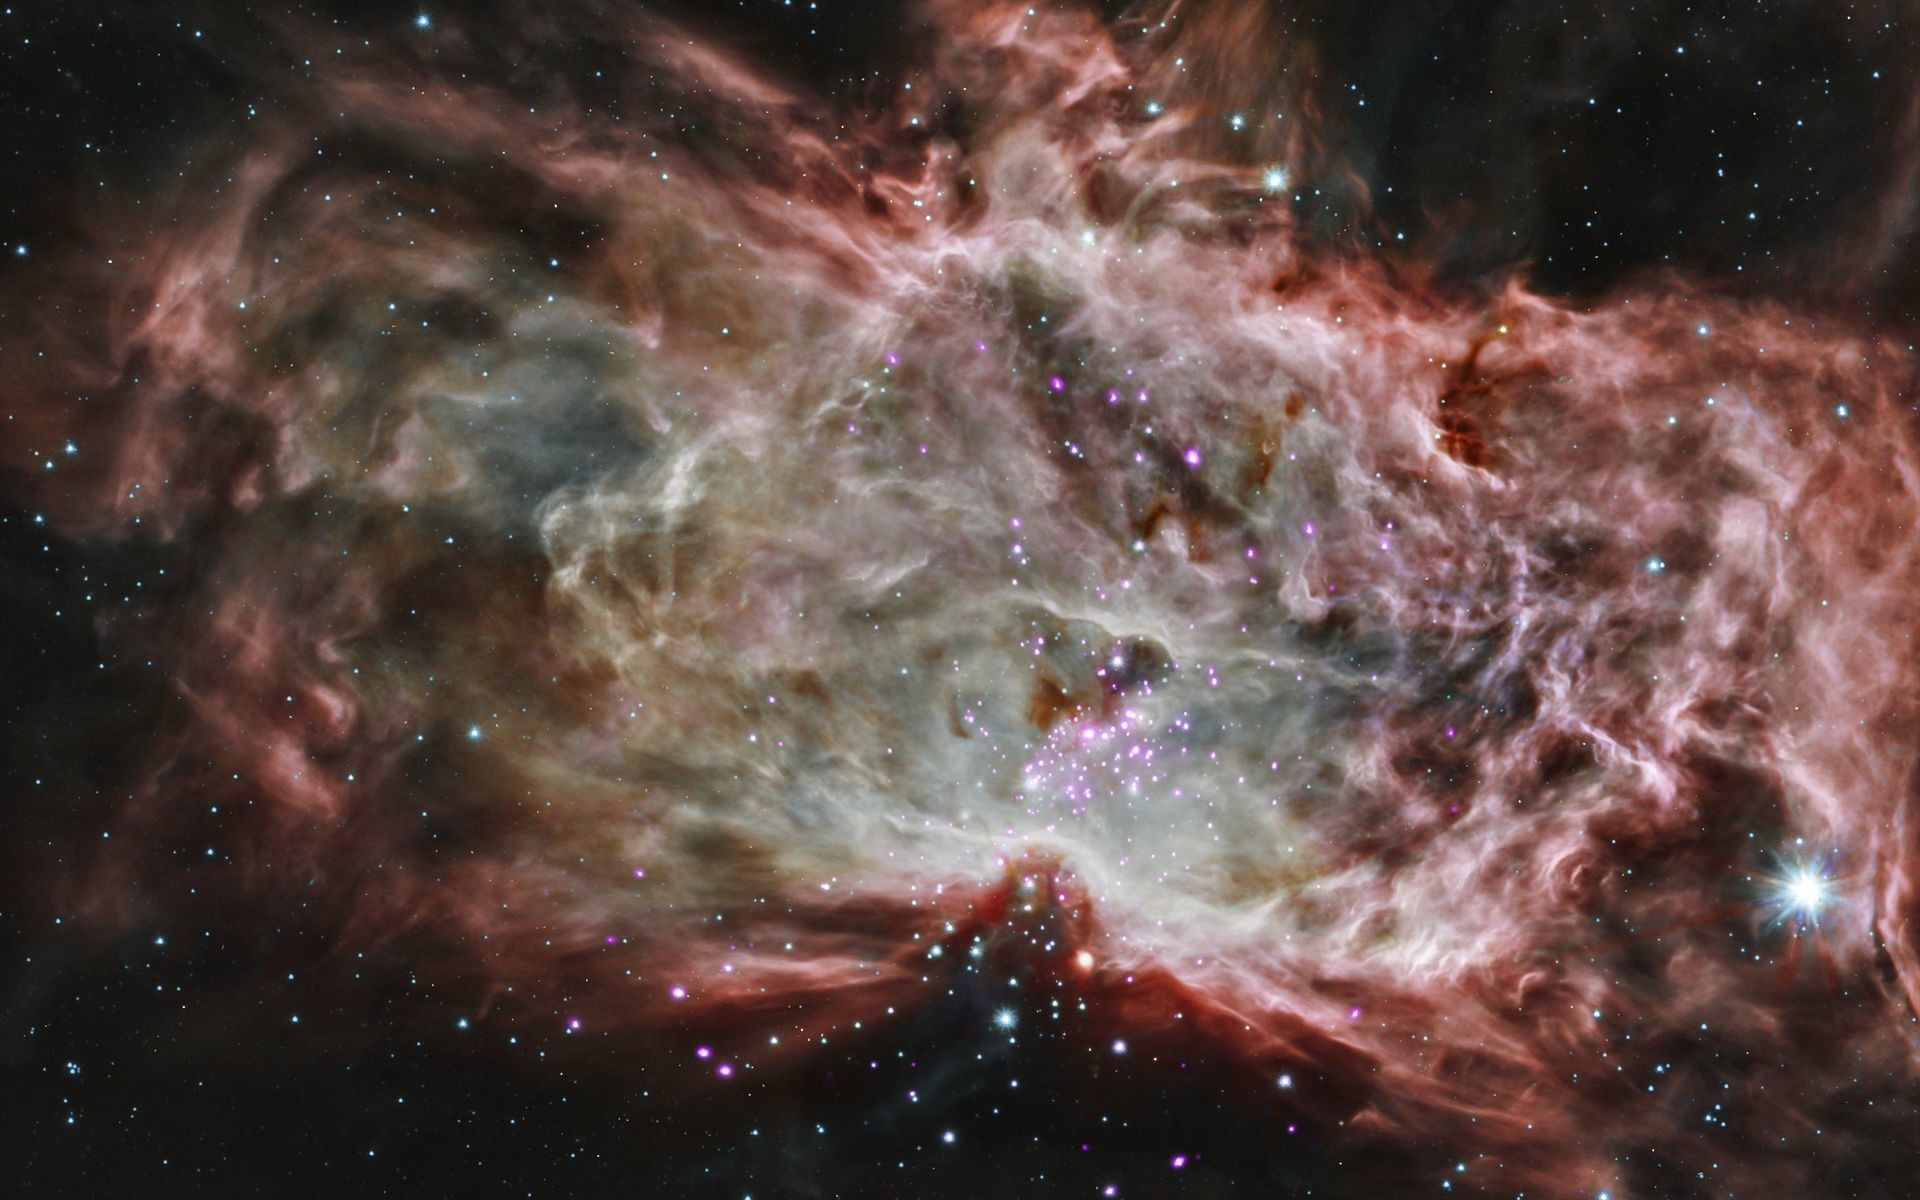 1920x1200 This composite image shows one of the clusters, NGC 2024, which is found in